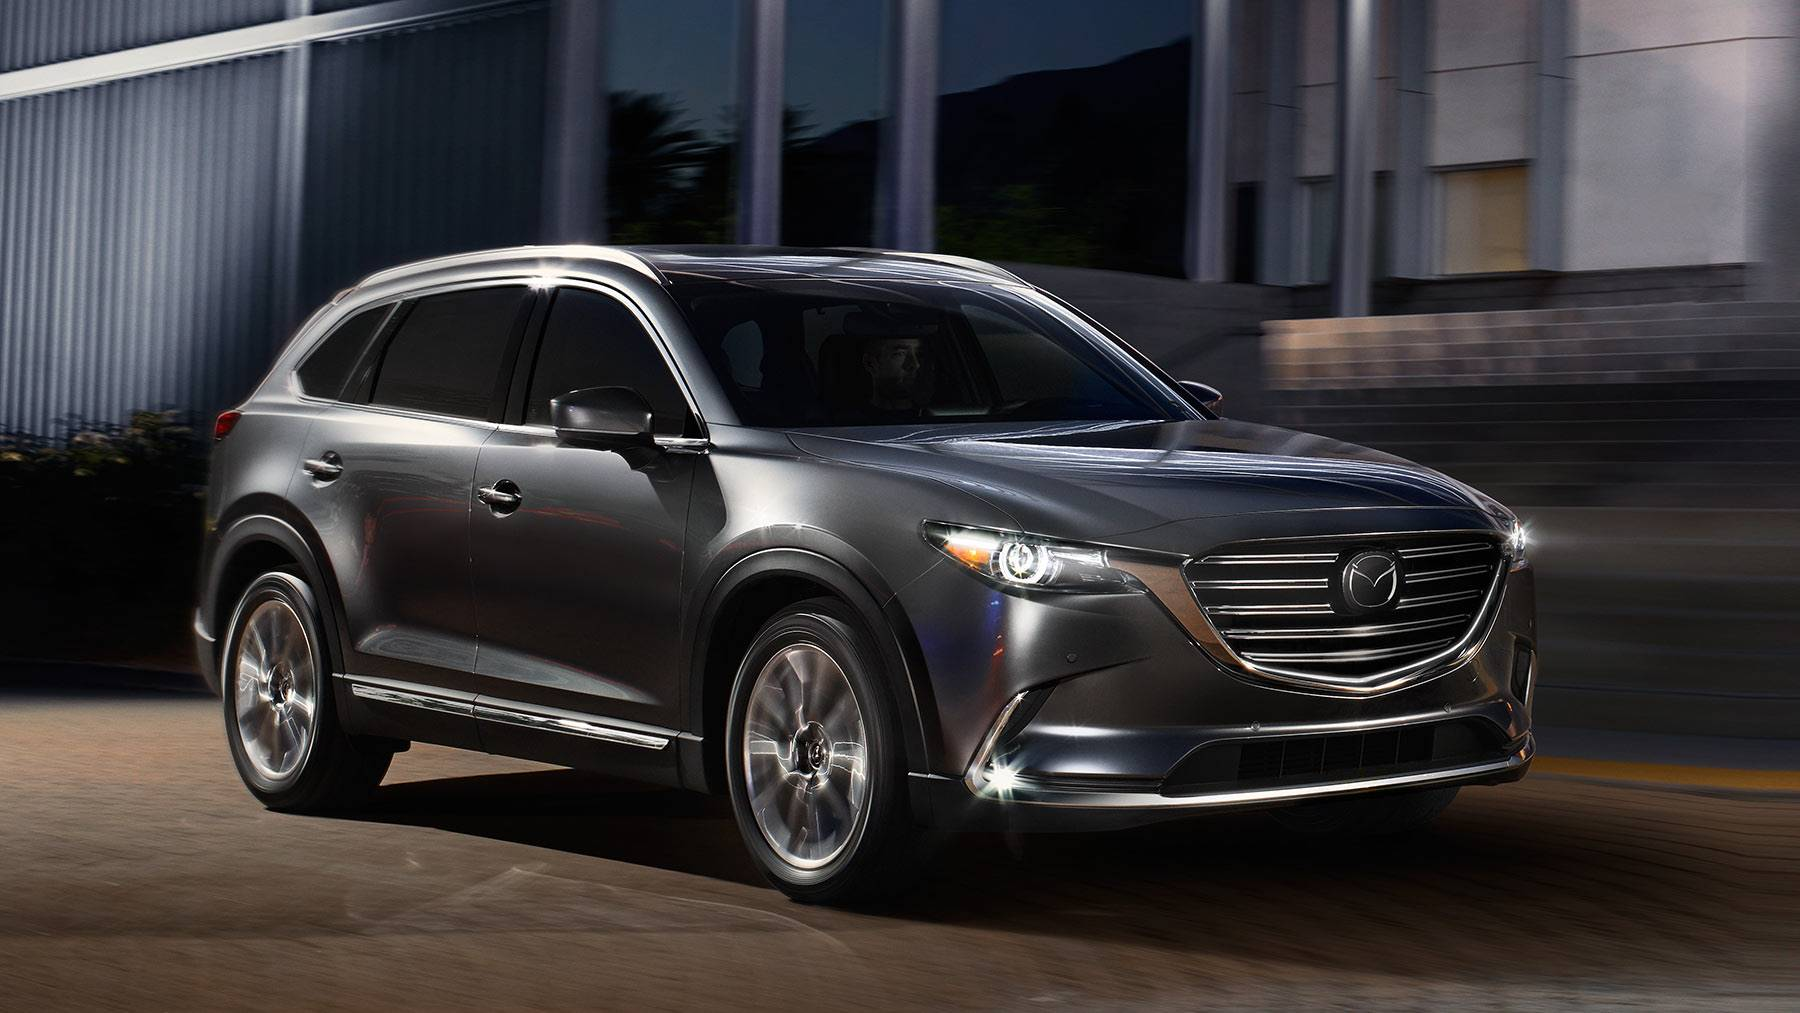 car price sedan sale new mazda columbus compact for offers deals oh lease finance htm and oem